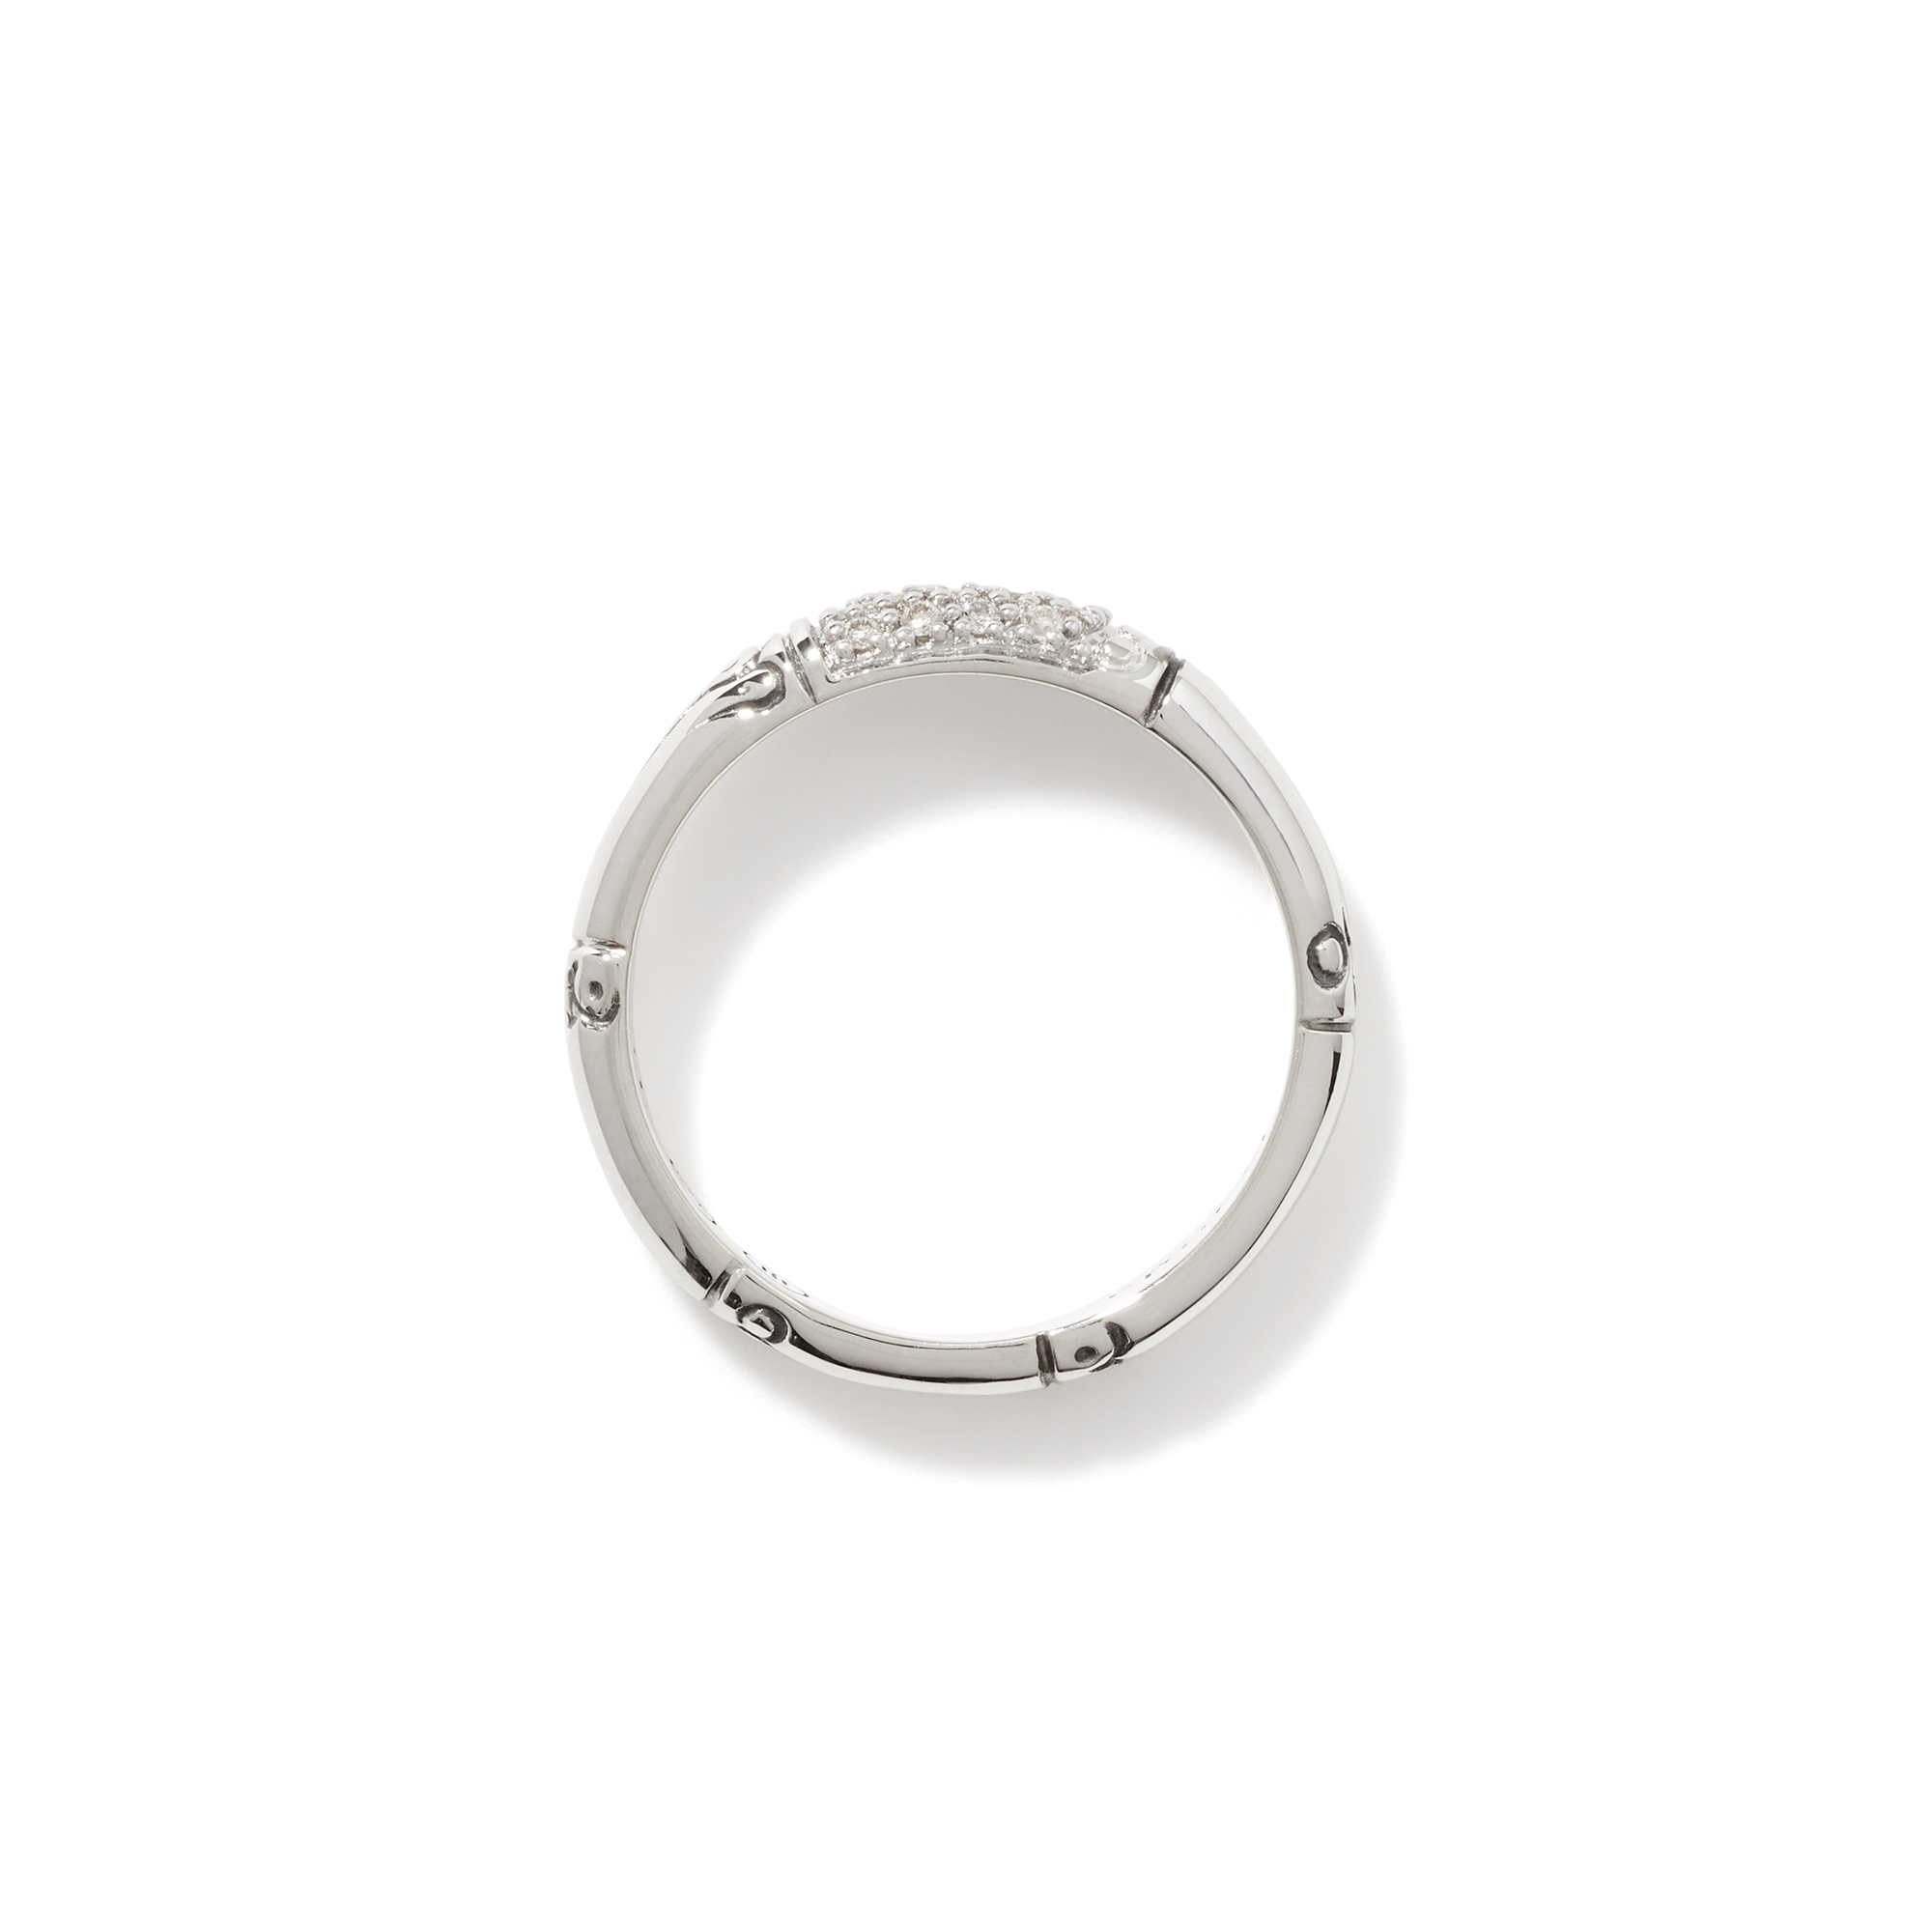 Bamboo 3.5MM Band Ring in Silver with Diamonds, White Diamond, large